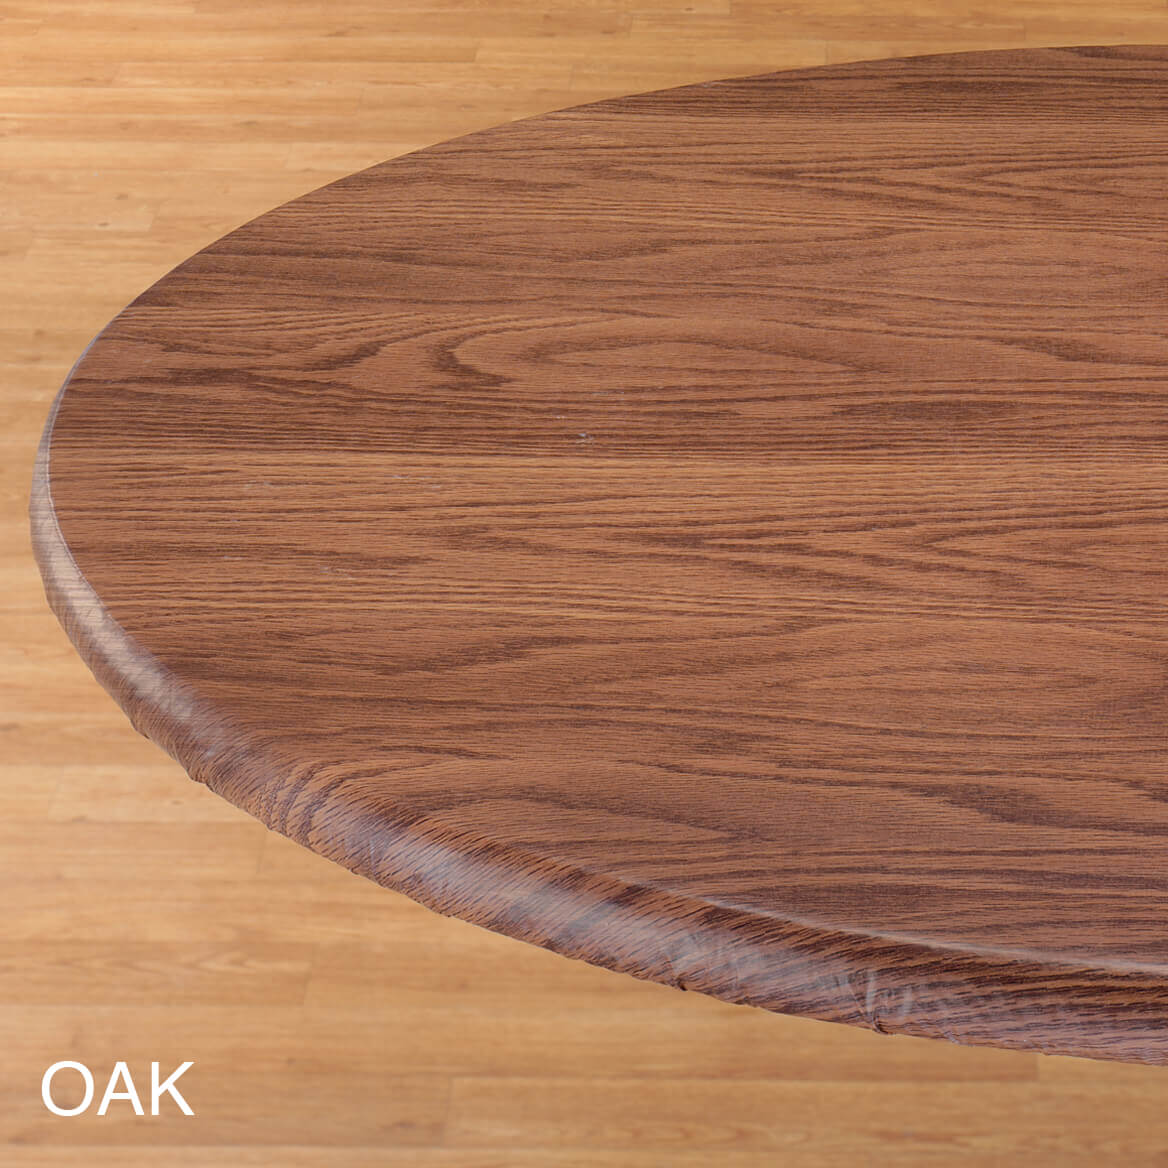 wood grain fitted table cover  fitted table cover  miles kimball - wood grain fitted table cover